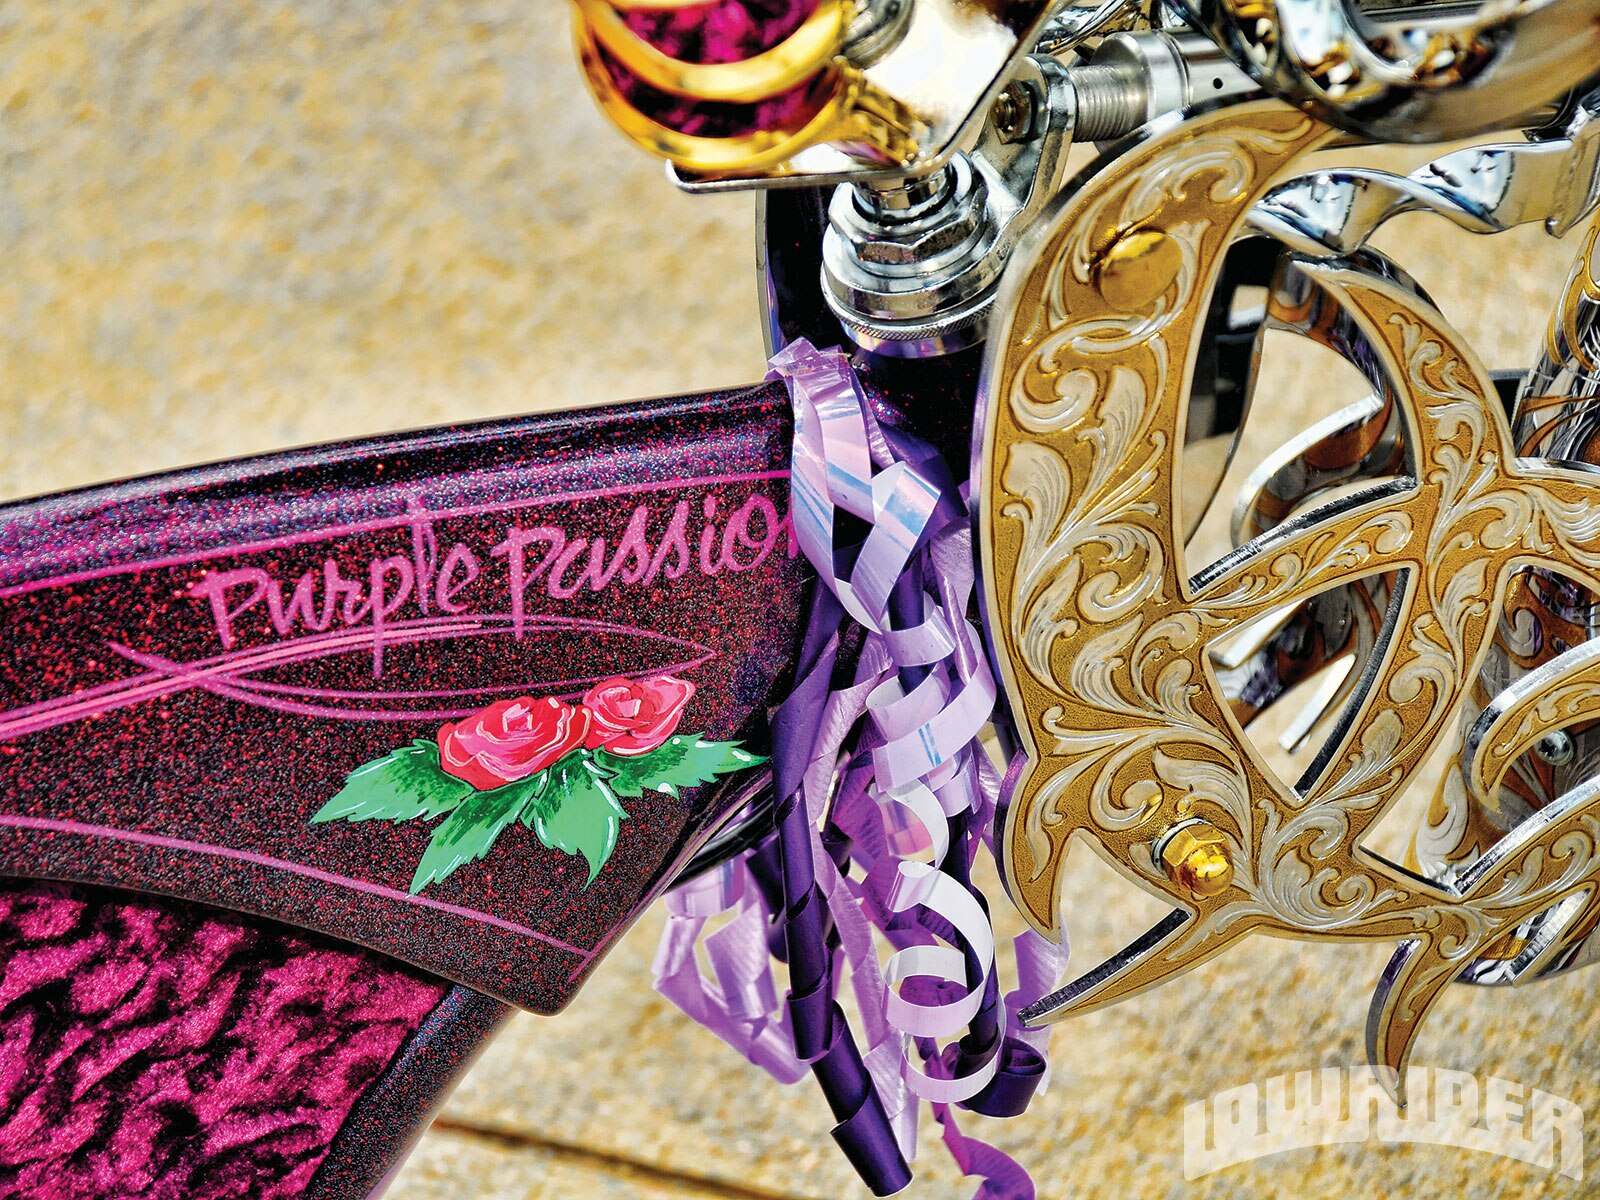 02-lowrider-custom-trike-purple-passion1